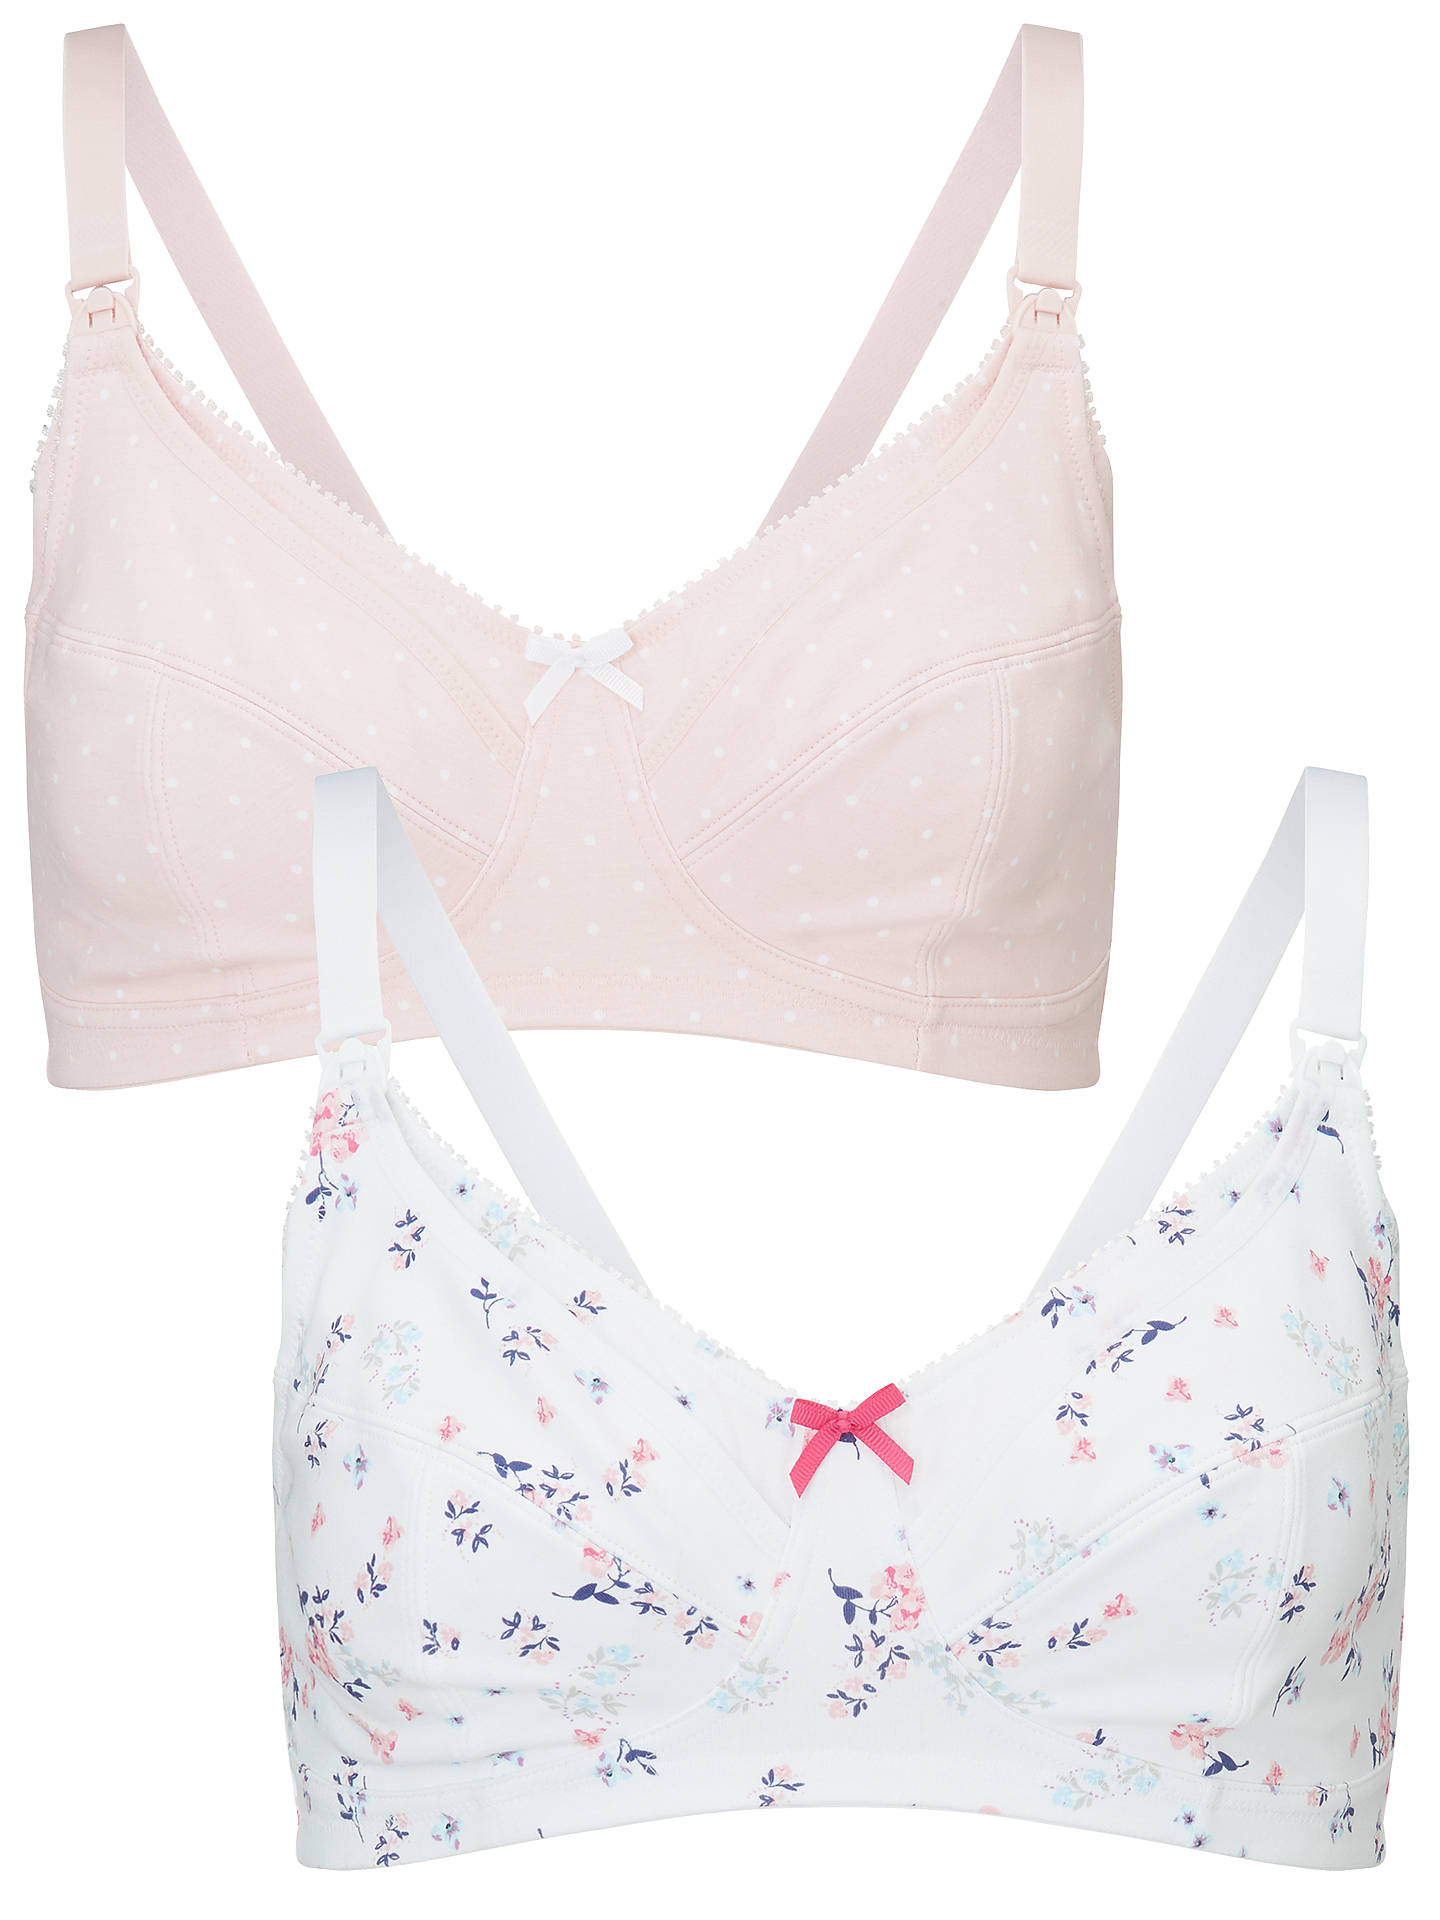 BuyJohn Lewis & Partners Printed Maternity Bra, Pack of 2, Sweet Pea/Spot Pink, 32C Online at johnlewis.com